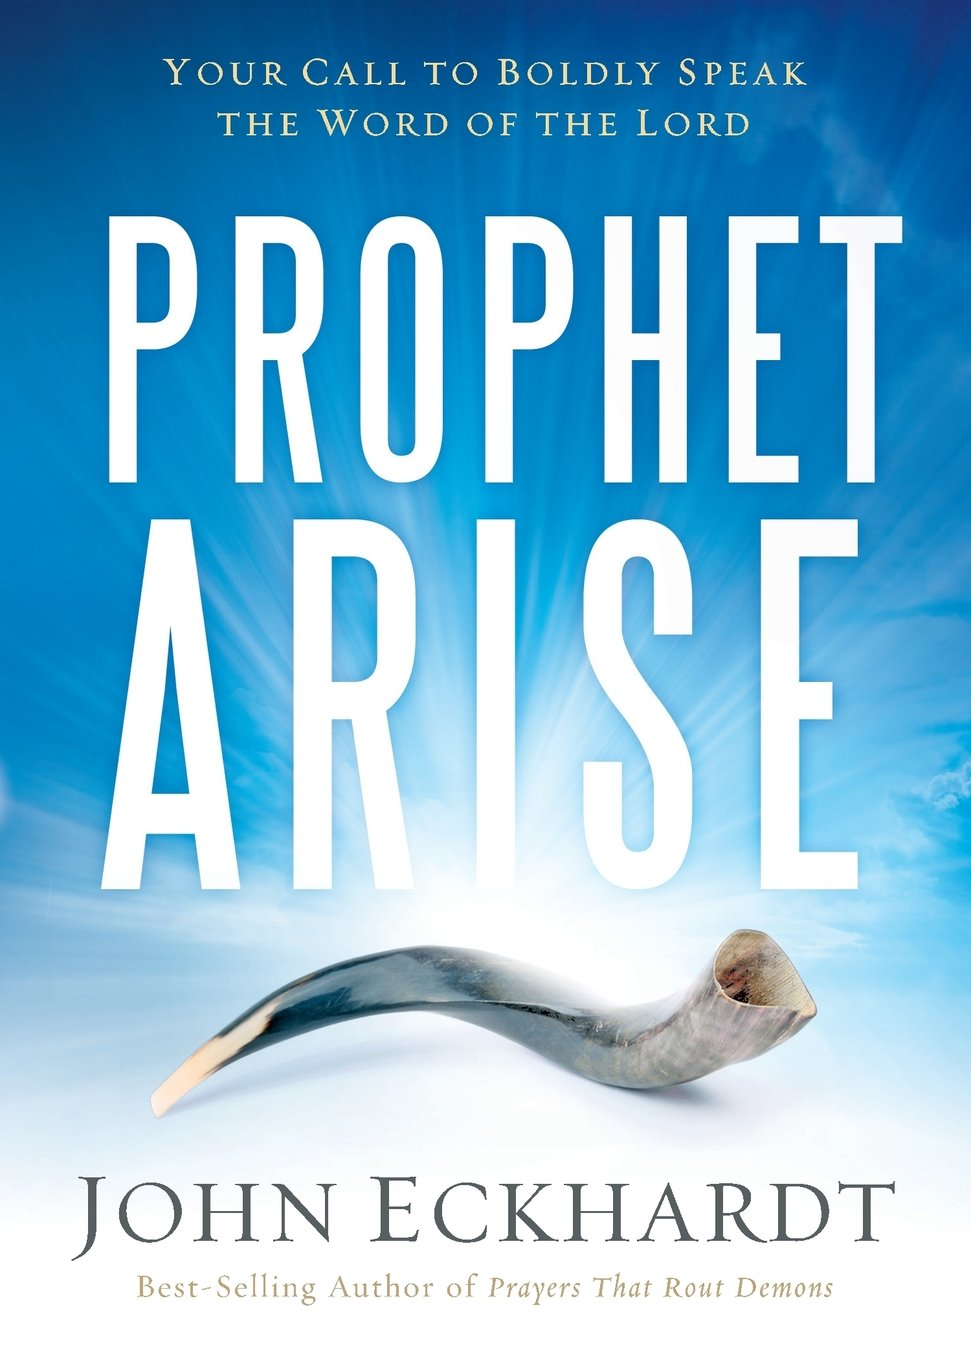 Buy Prophet, Arise: Your Call to Boldly Speak the Word of the Lord